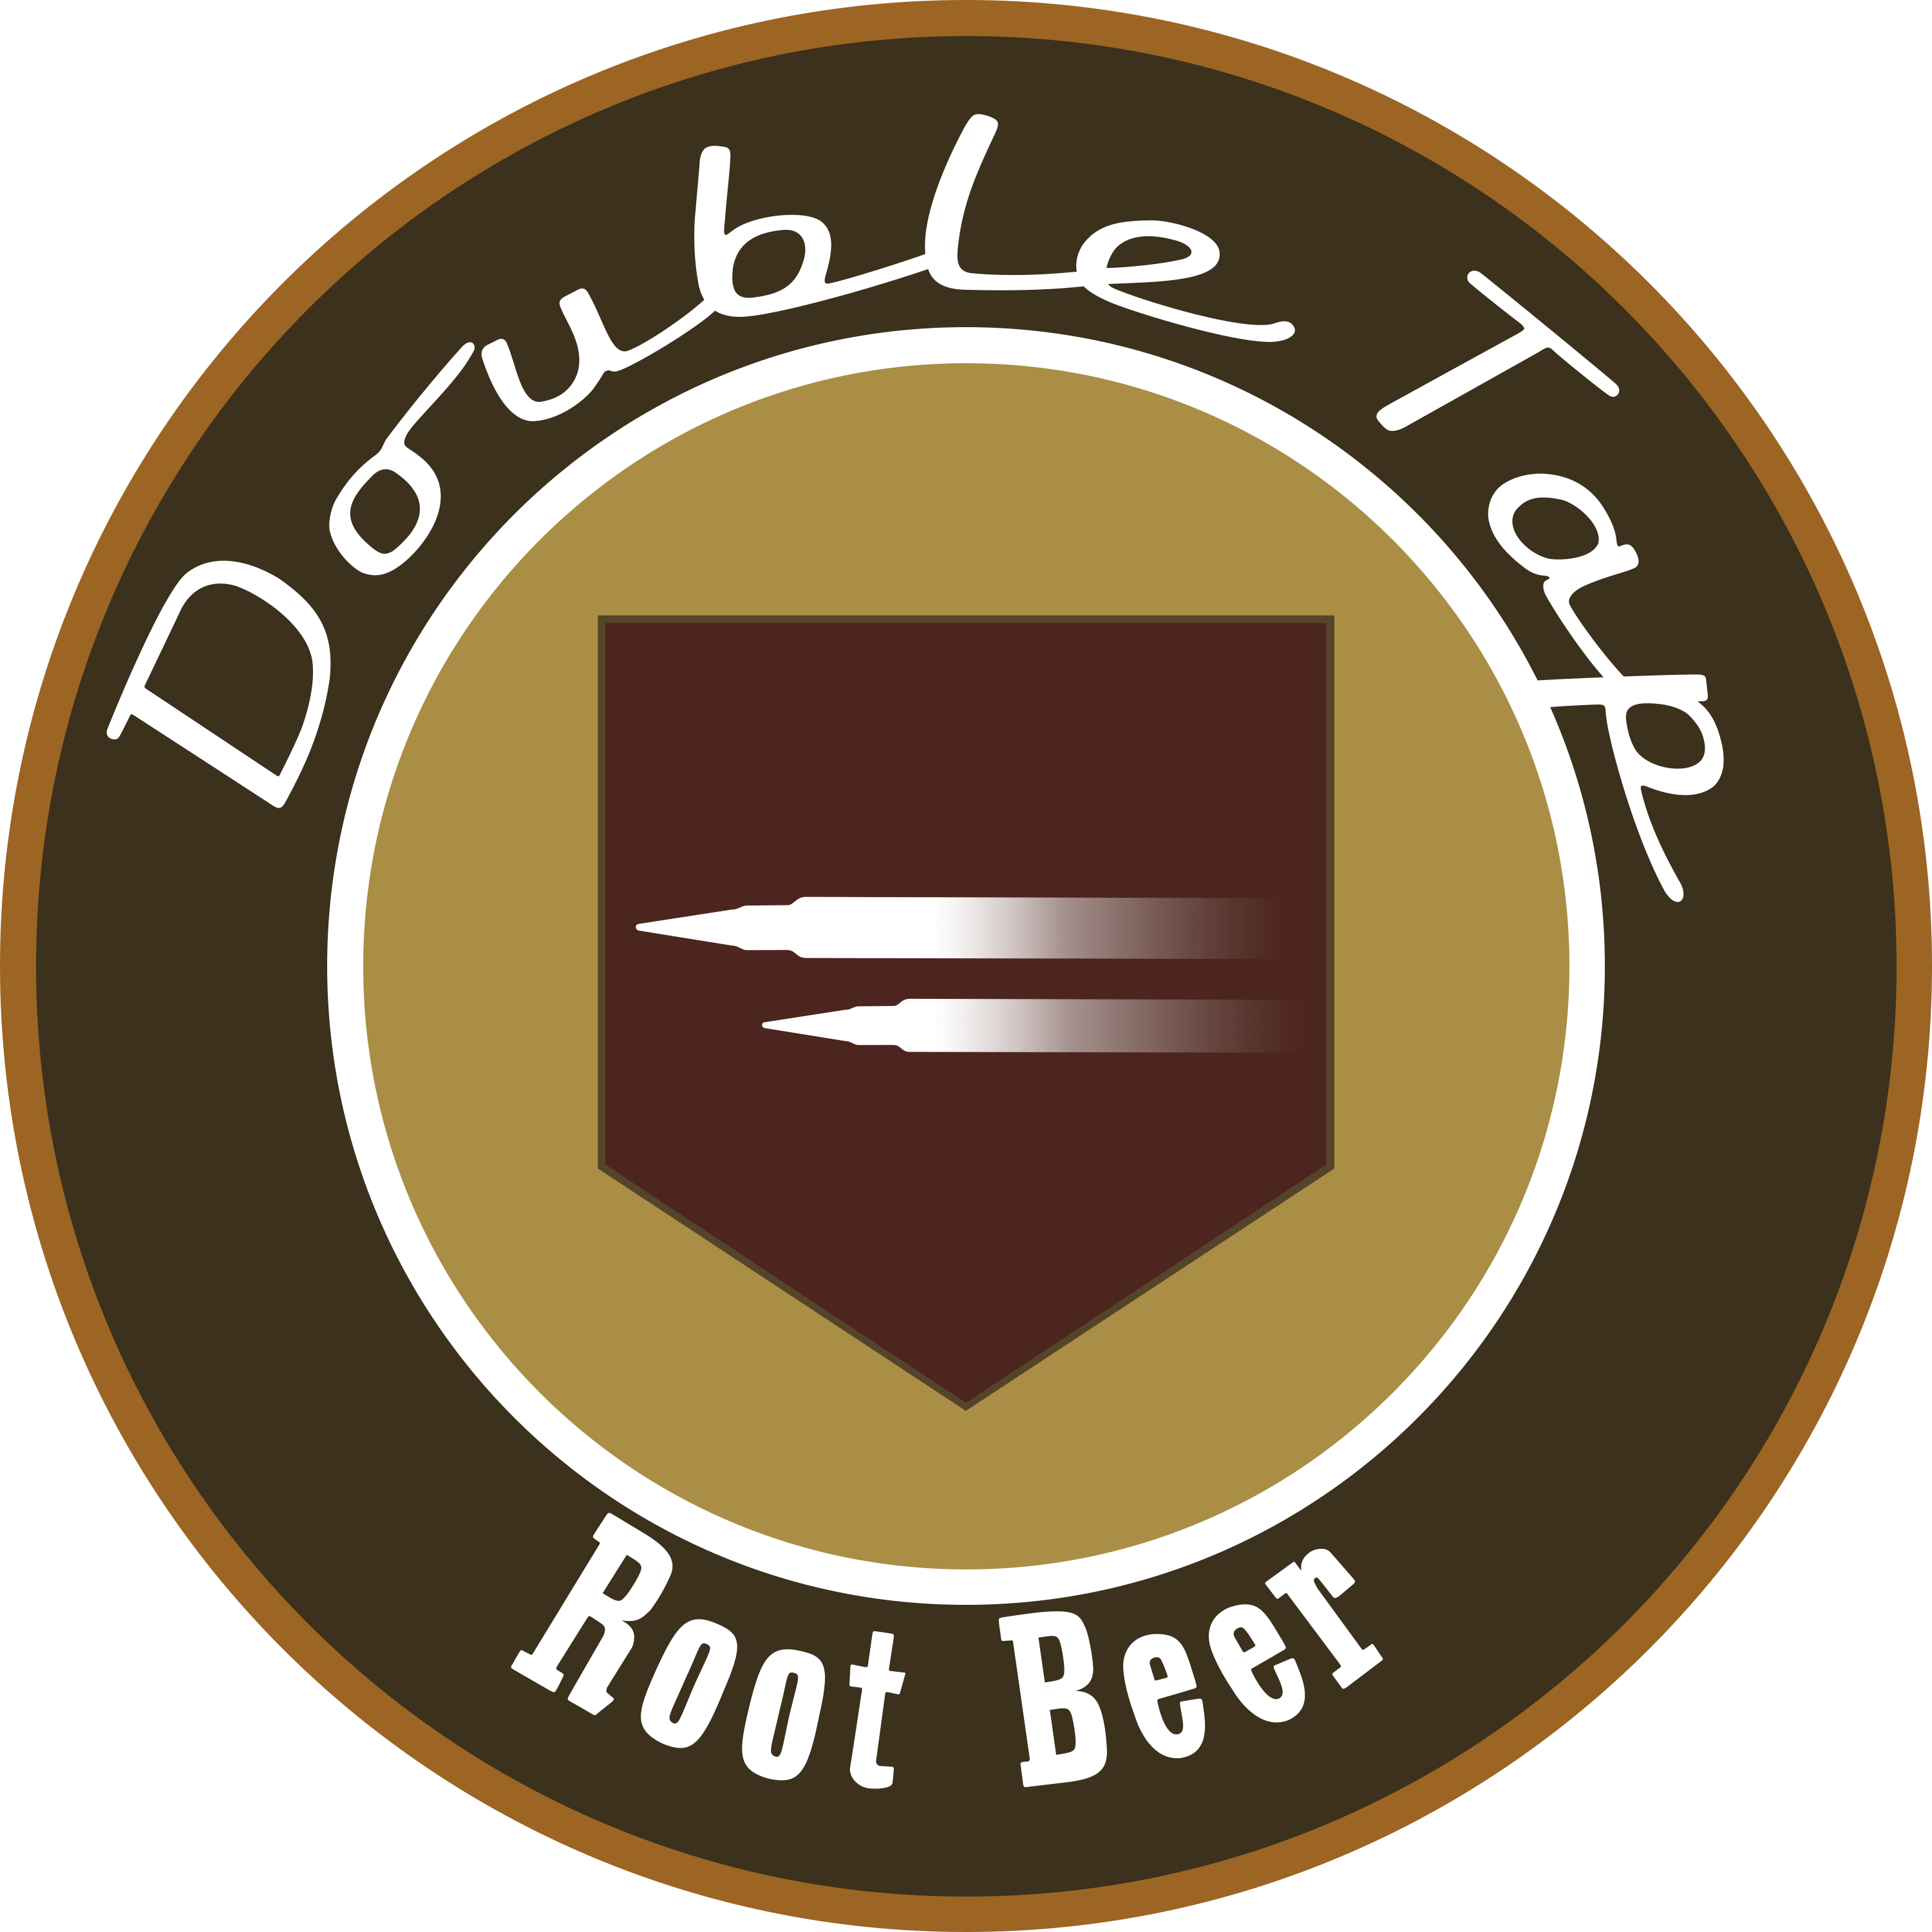 Double Tap Root Beer Logo from Treyarch zombies (3000x3000